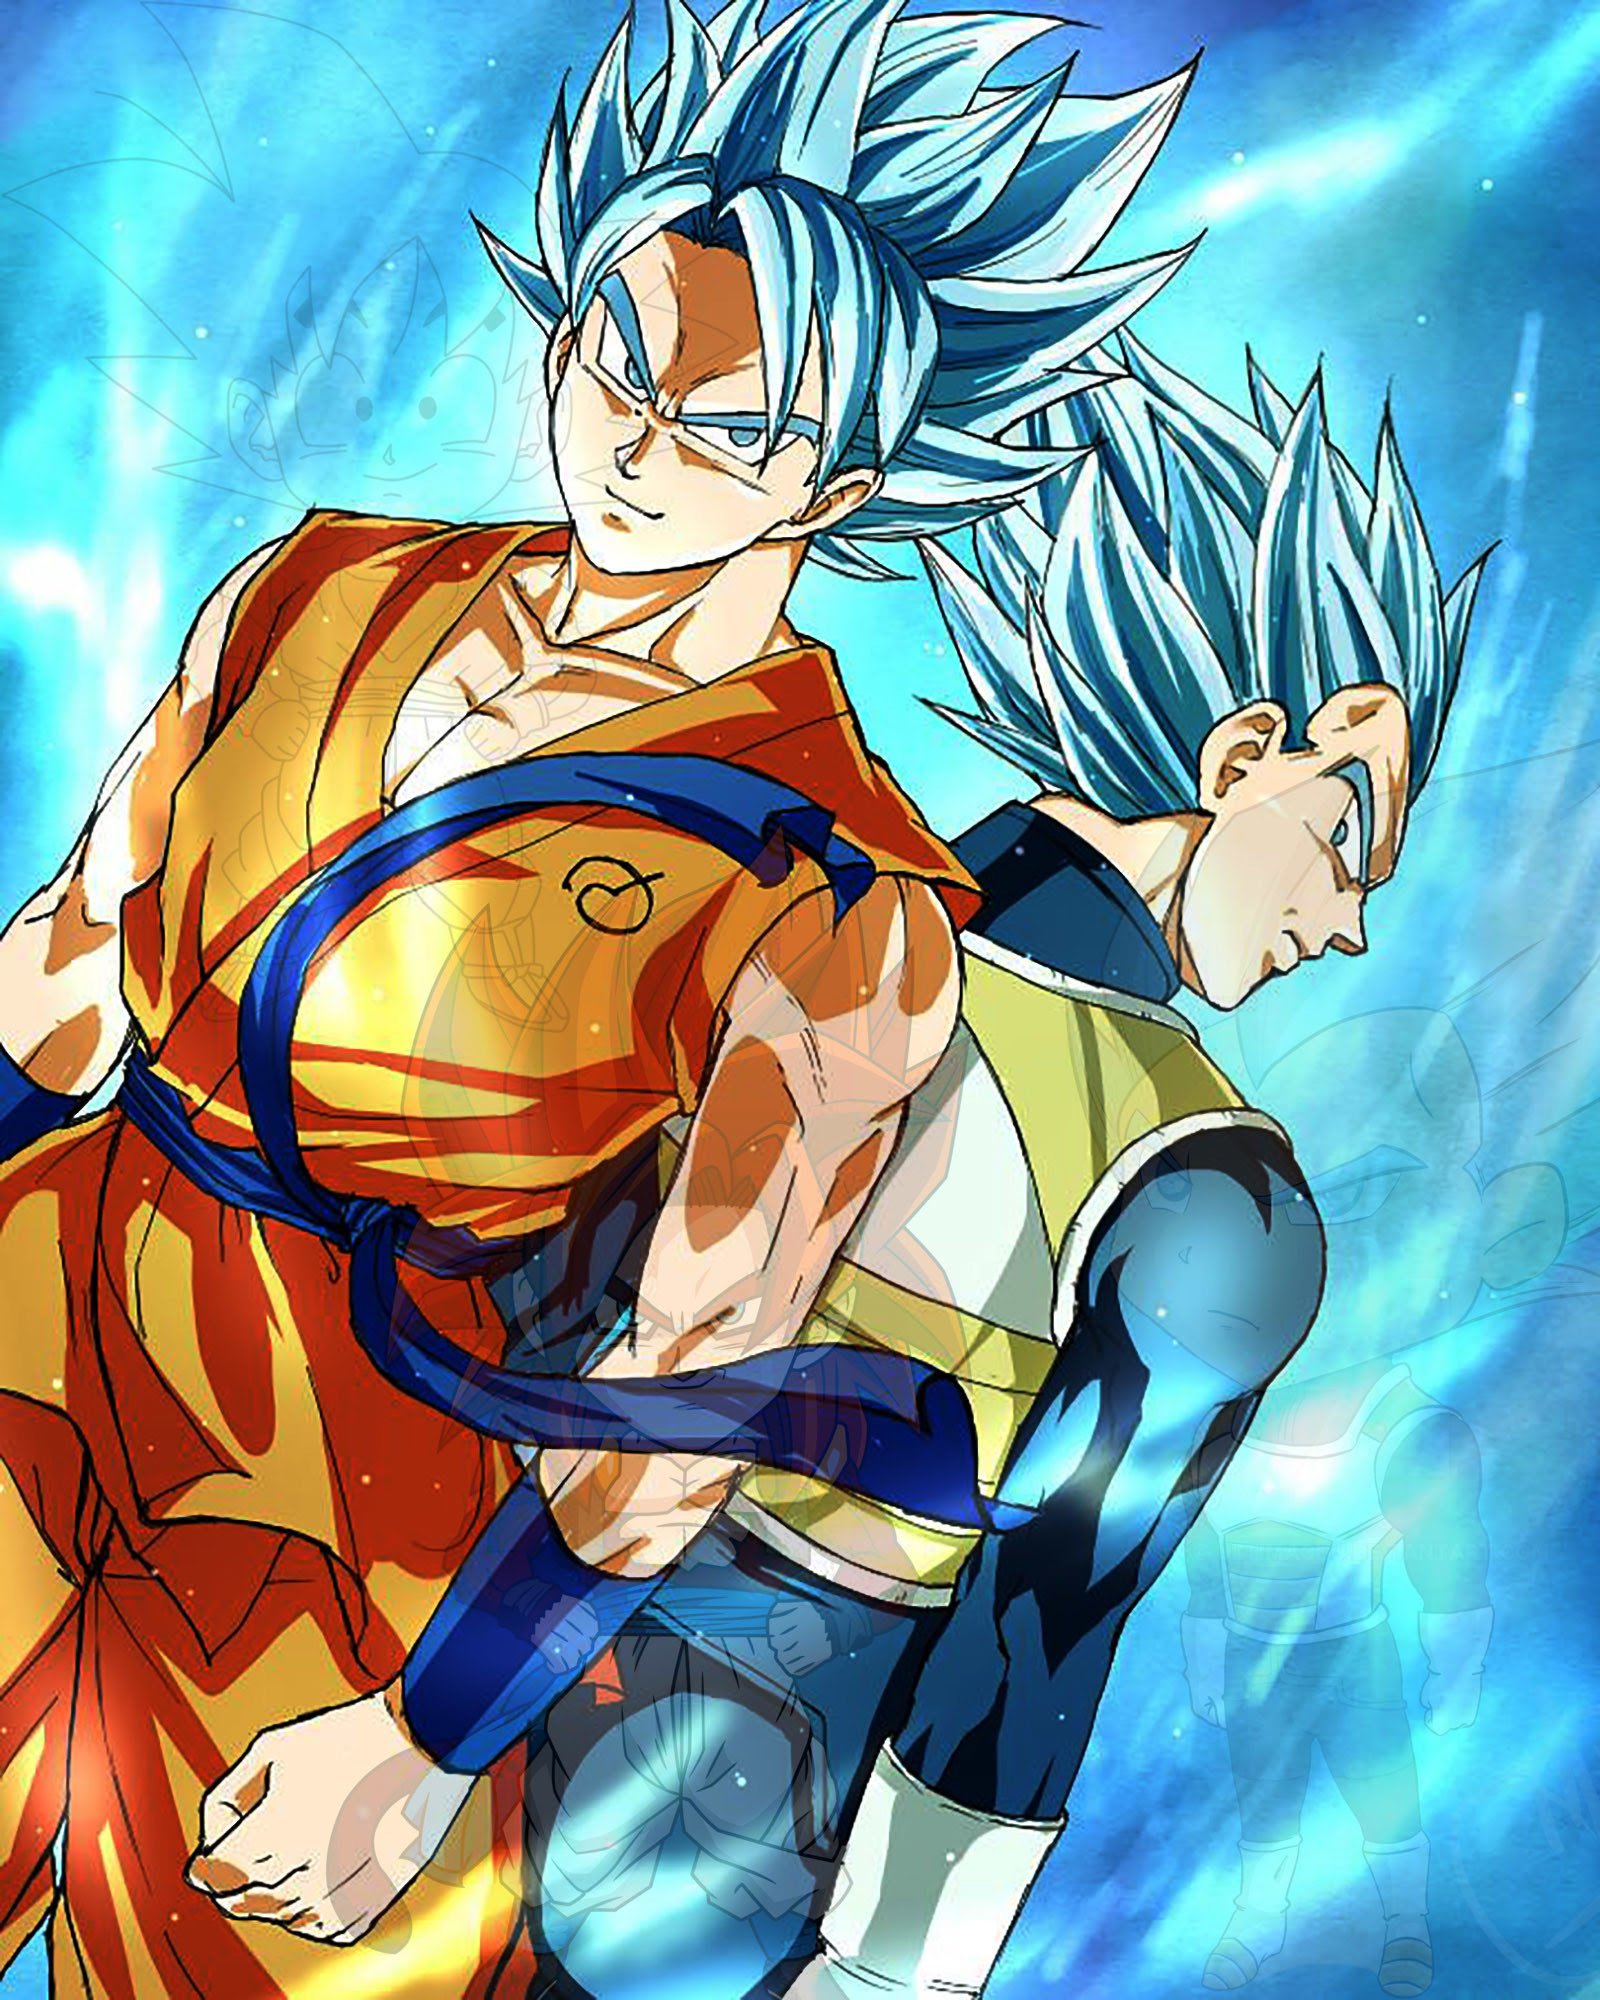 Vegeta Phone Wallpaper 61+ images